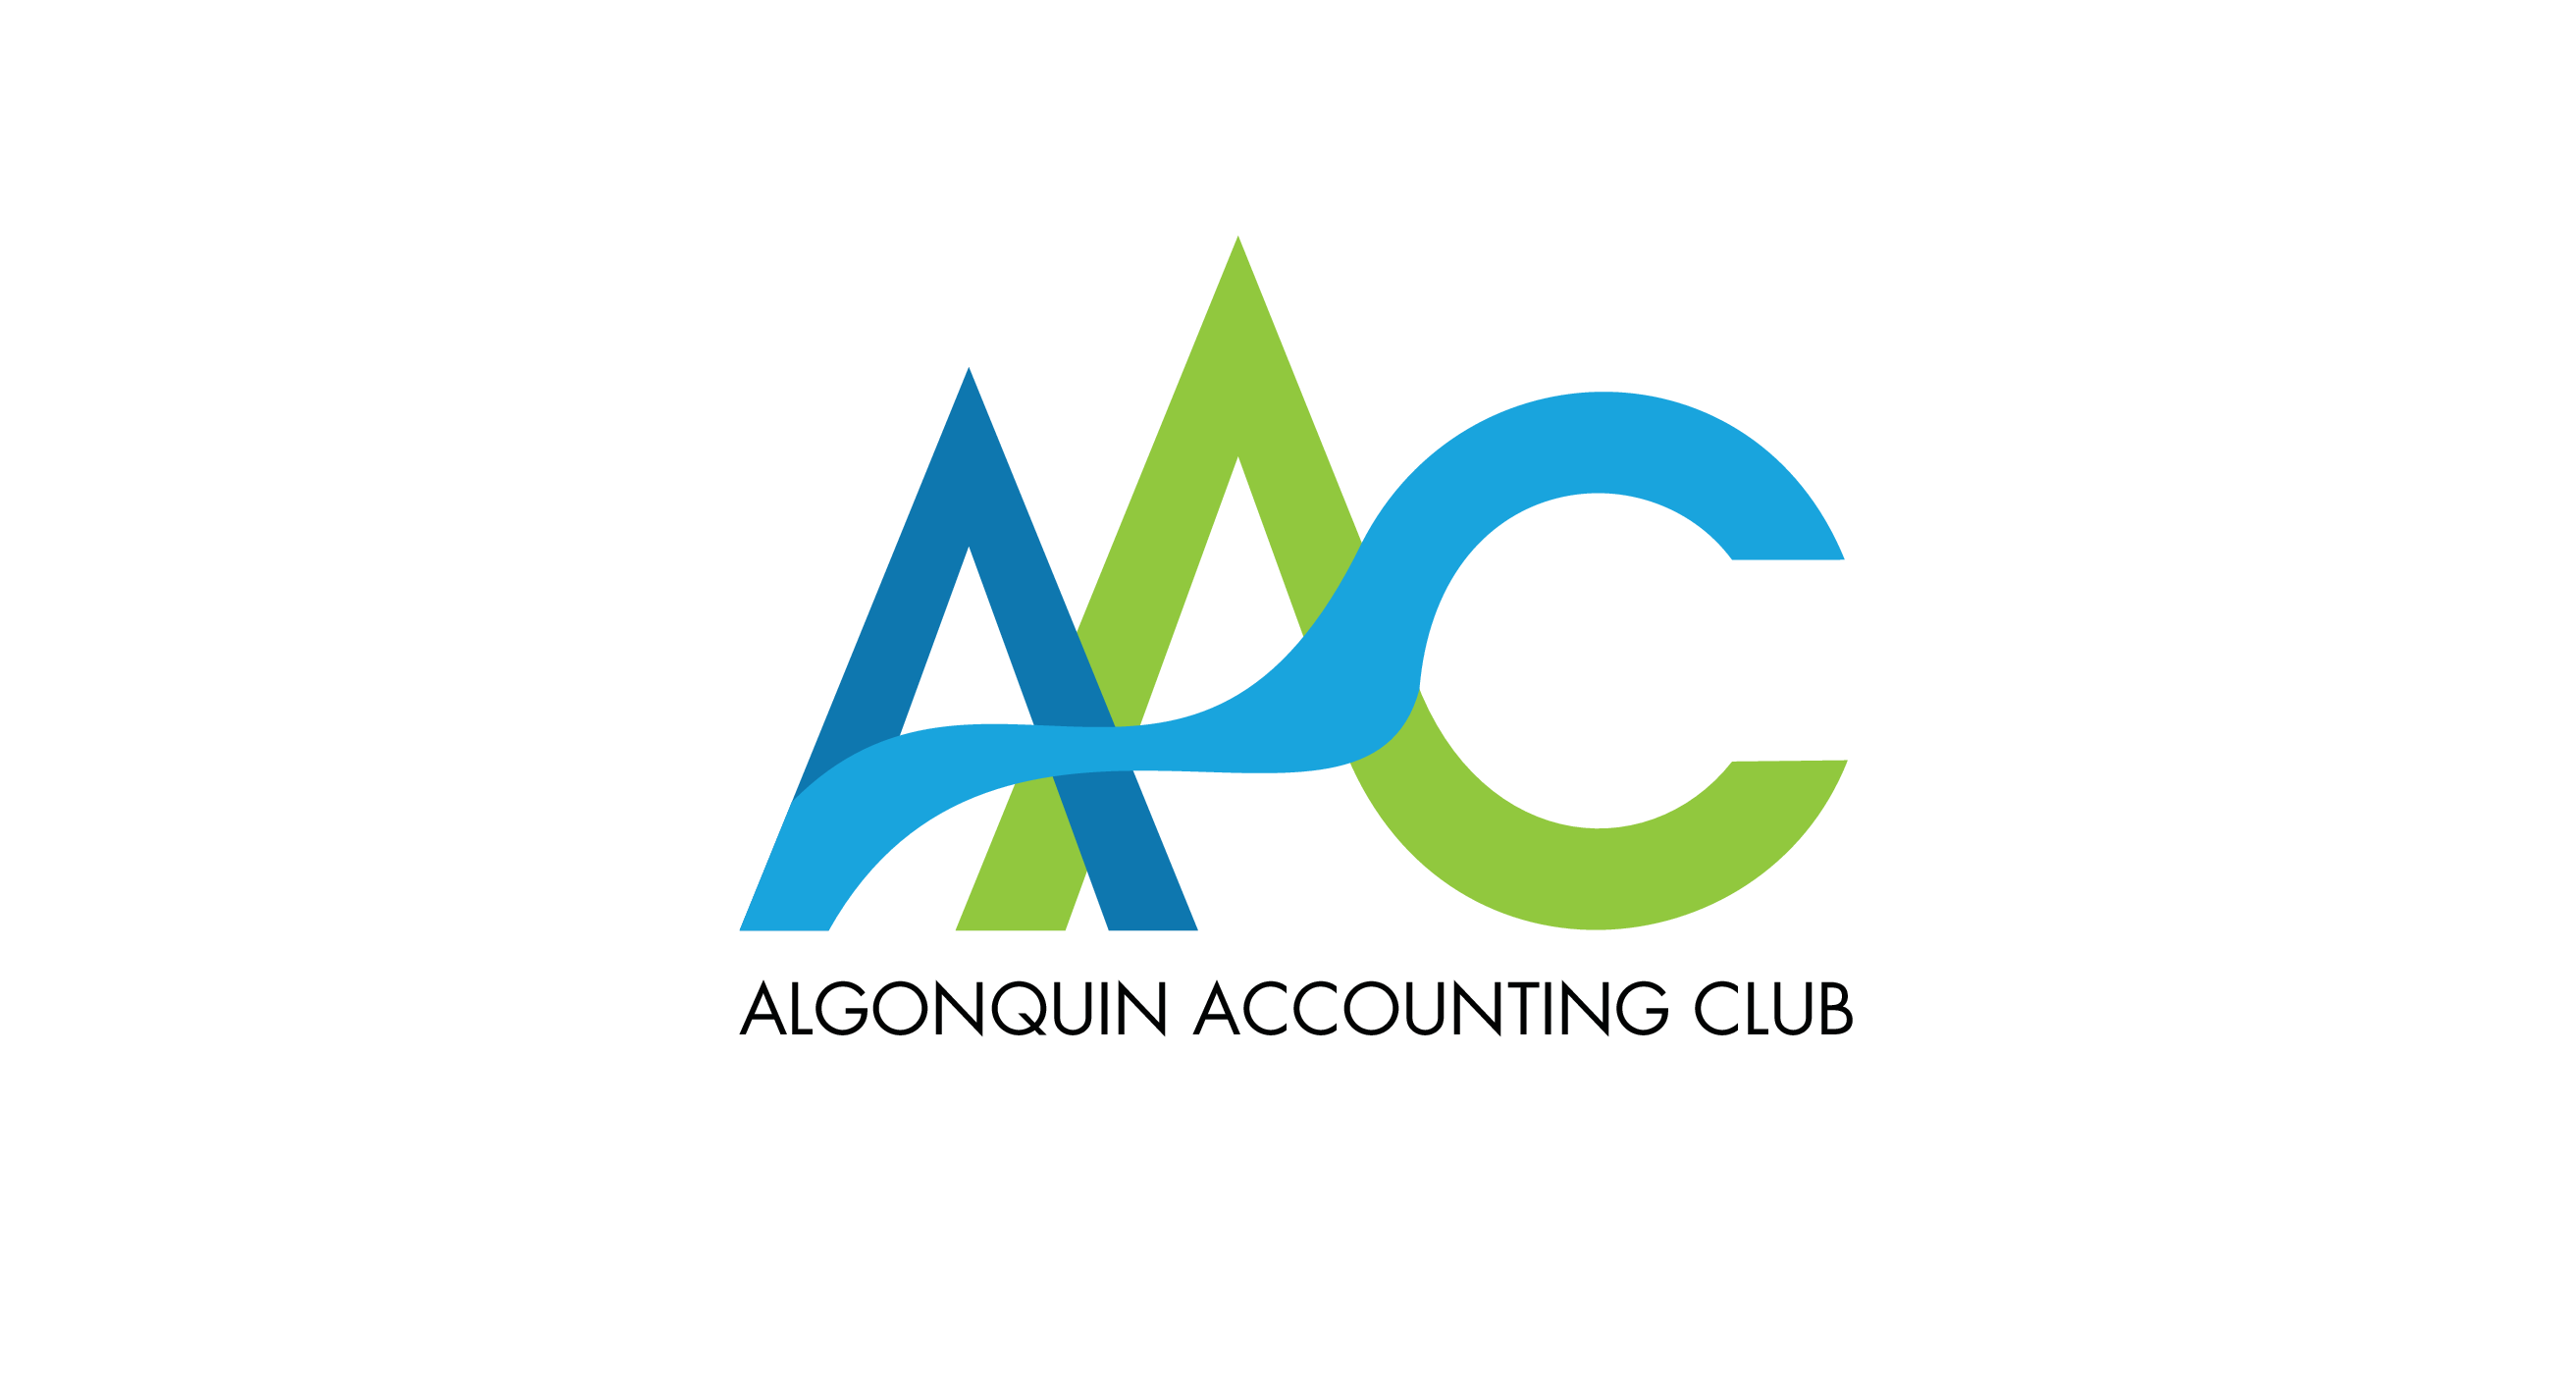 Accounting Club - Aac, Transparent background PNG HD thumbnail